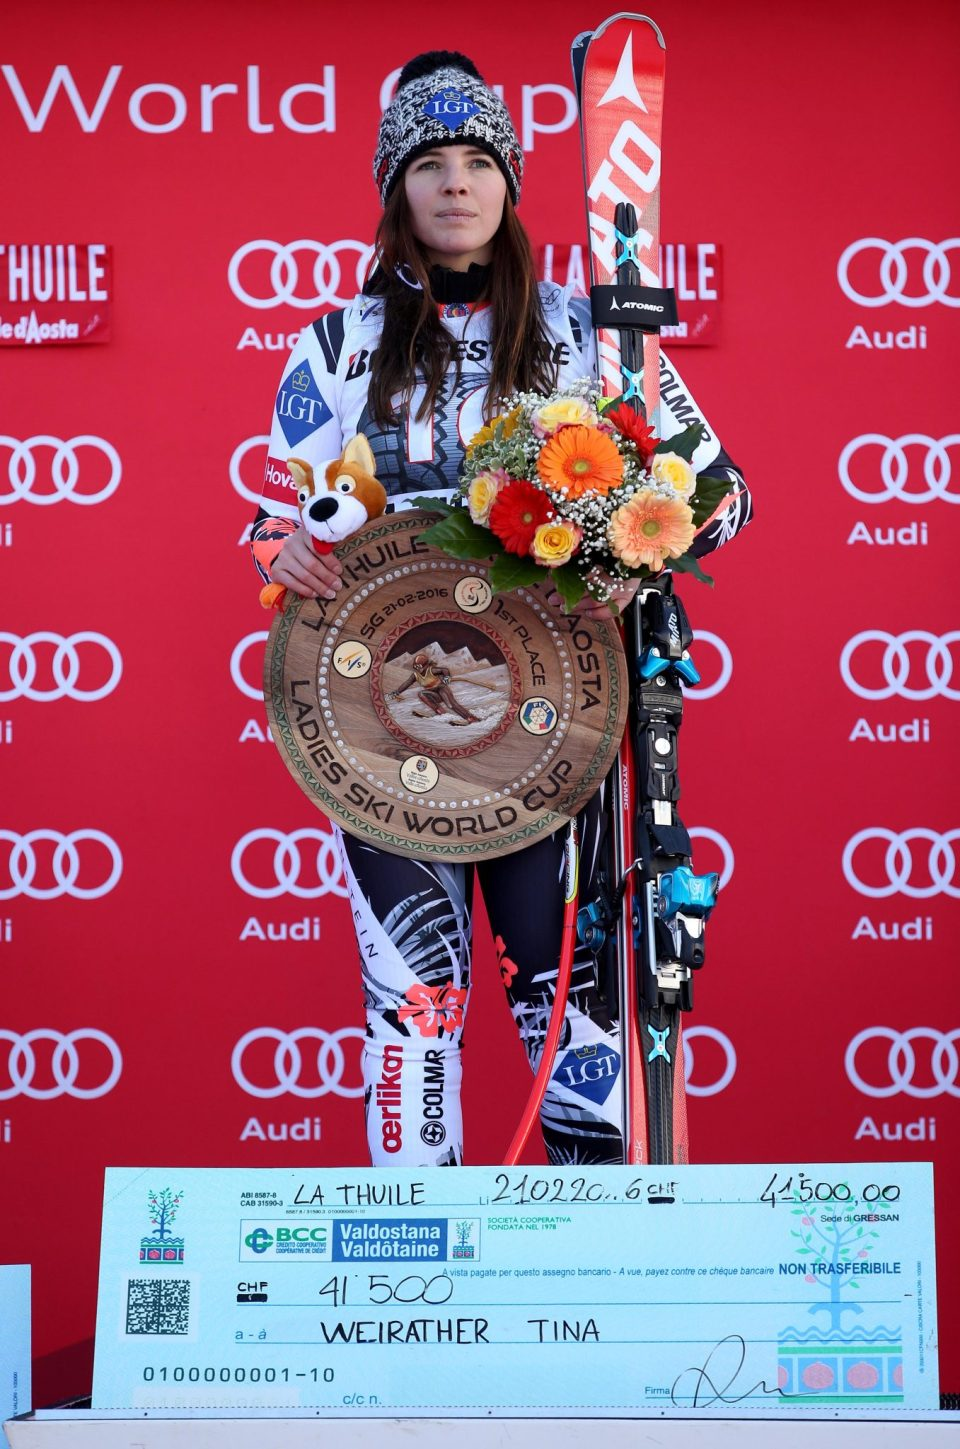 LA THUILE,ITALY,21.FEB.16 - ALPINE SKIING - FIS World Cup, Super G, ladies, award ceremony. Image shows Tina Weirather (LIE). Photo: GEPA pictures/ Daniel Goetzhaber